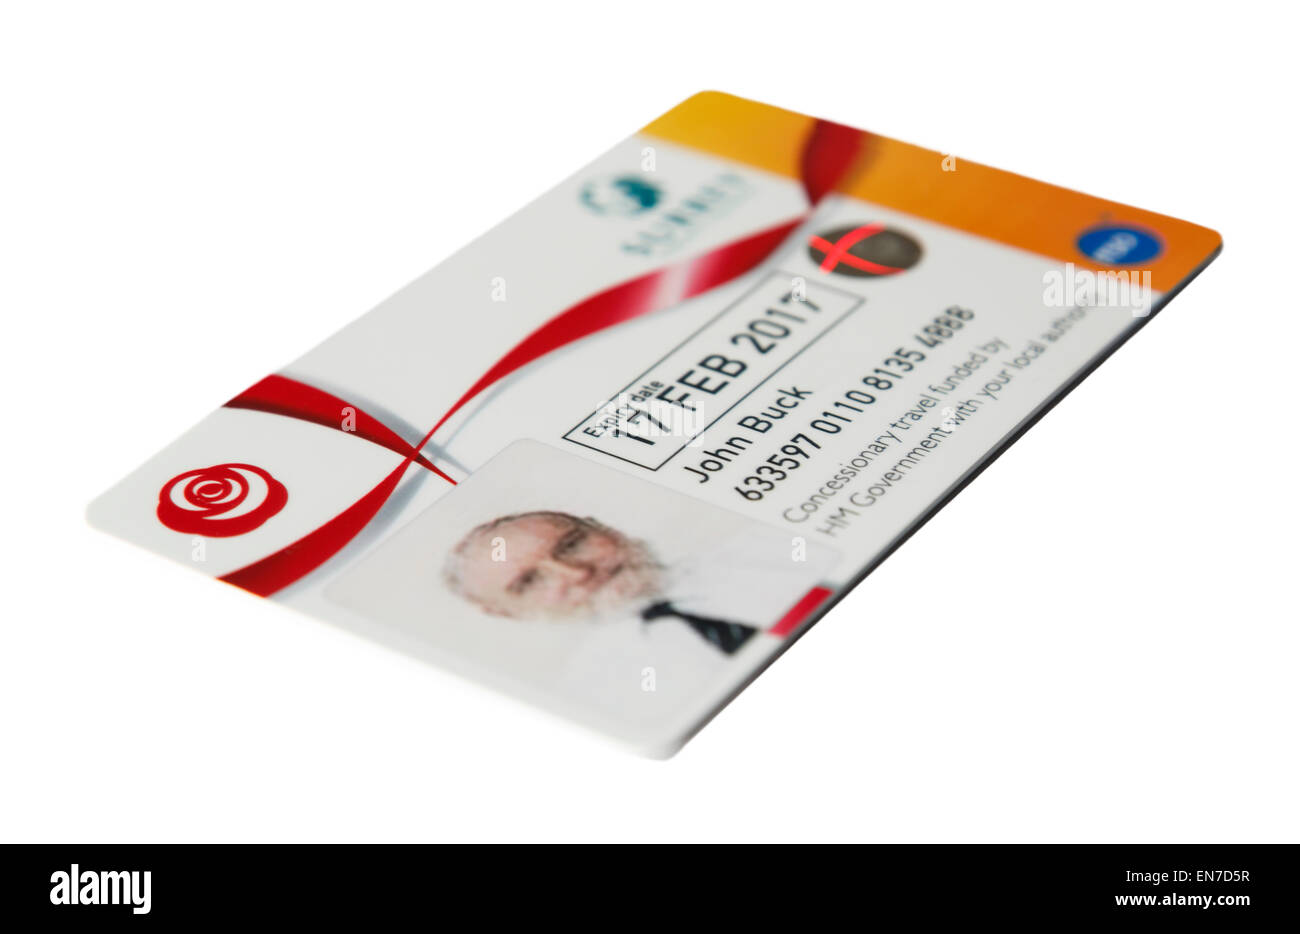 Senior person's bus pass concessionary travel card with photo from local authority for free travel on buses - Stock Image